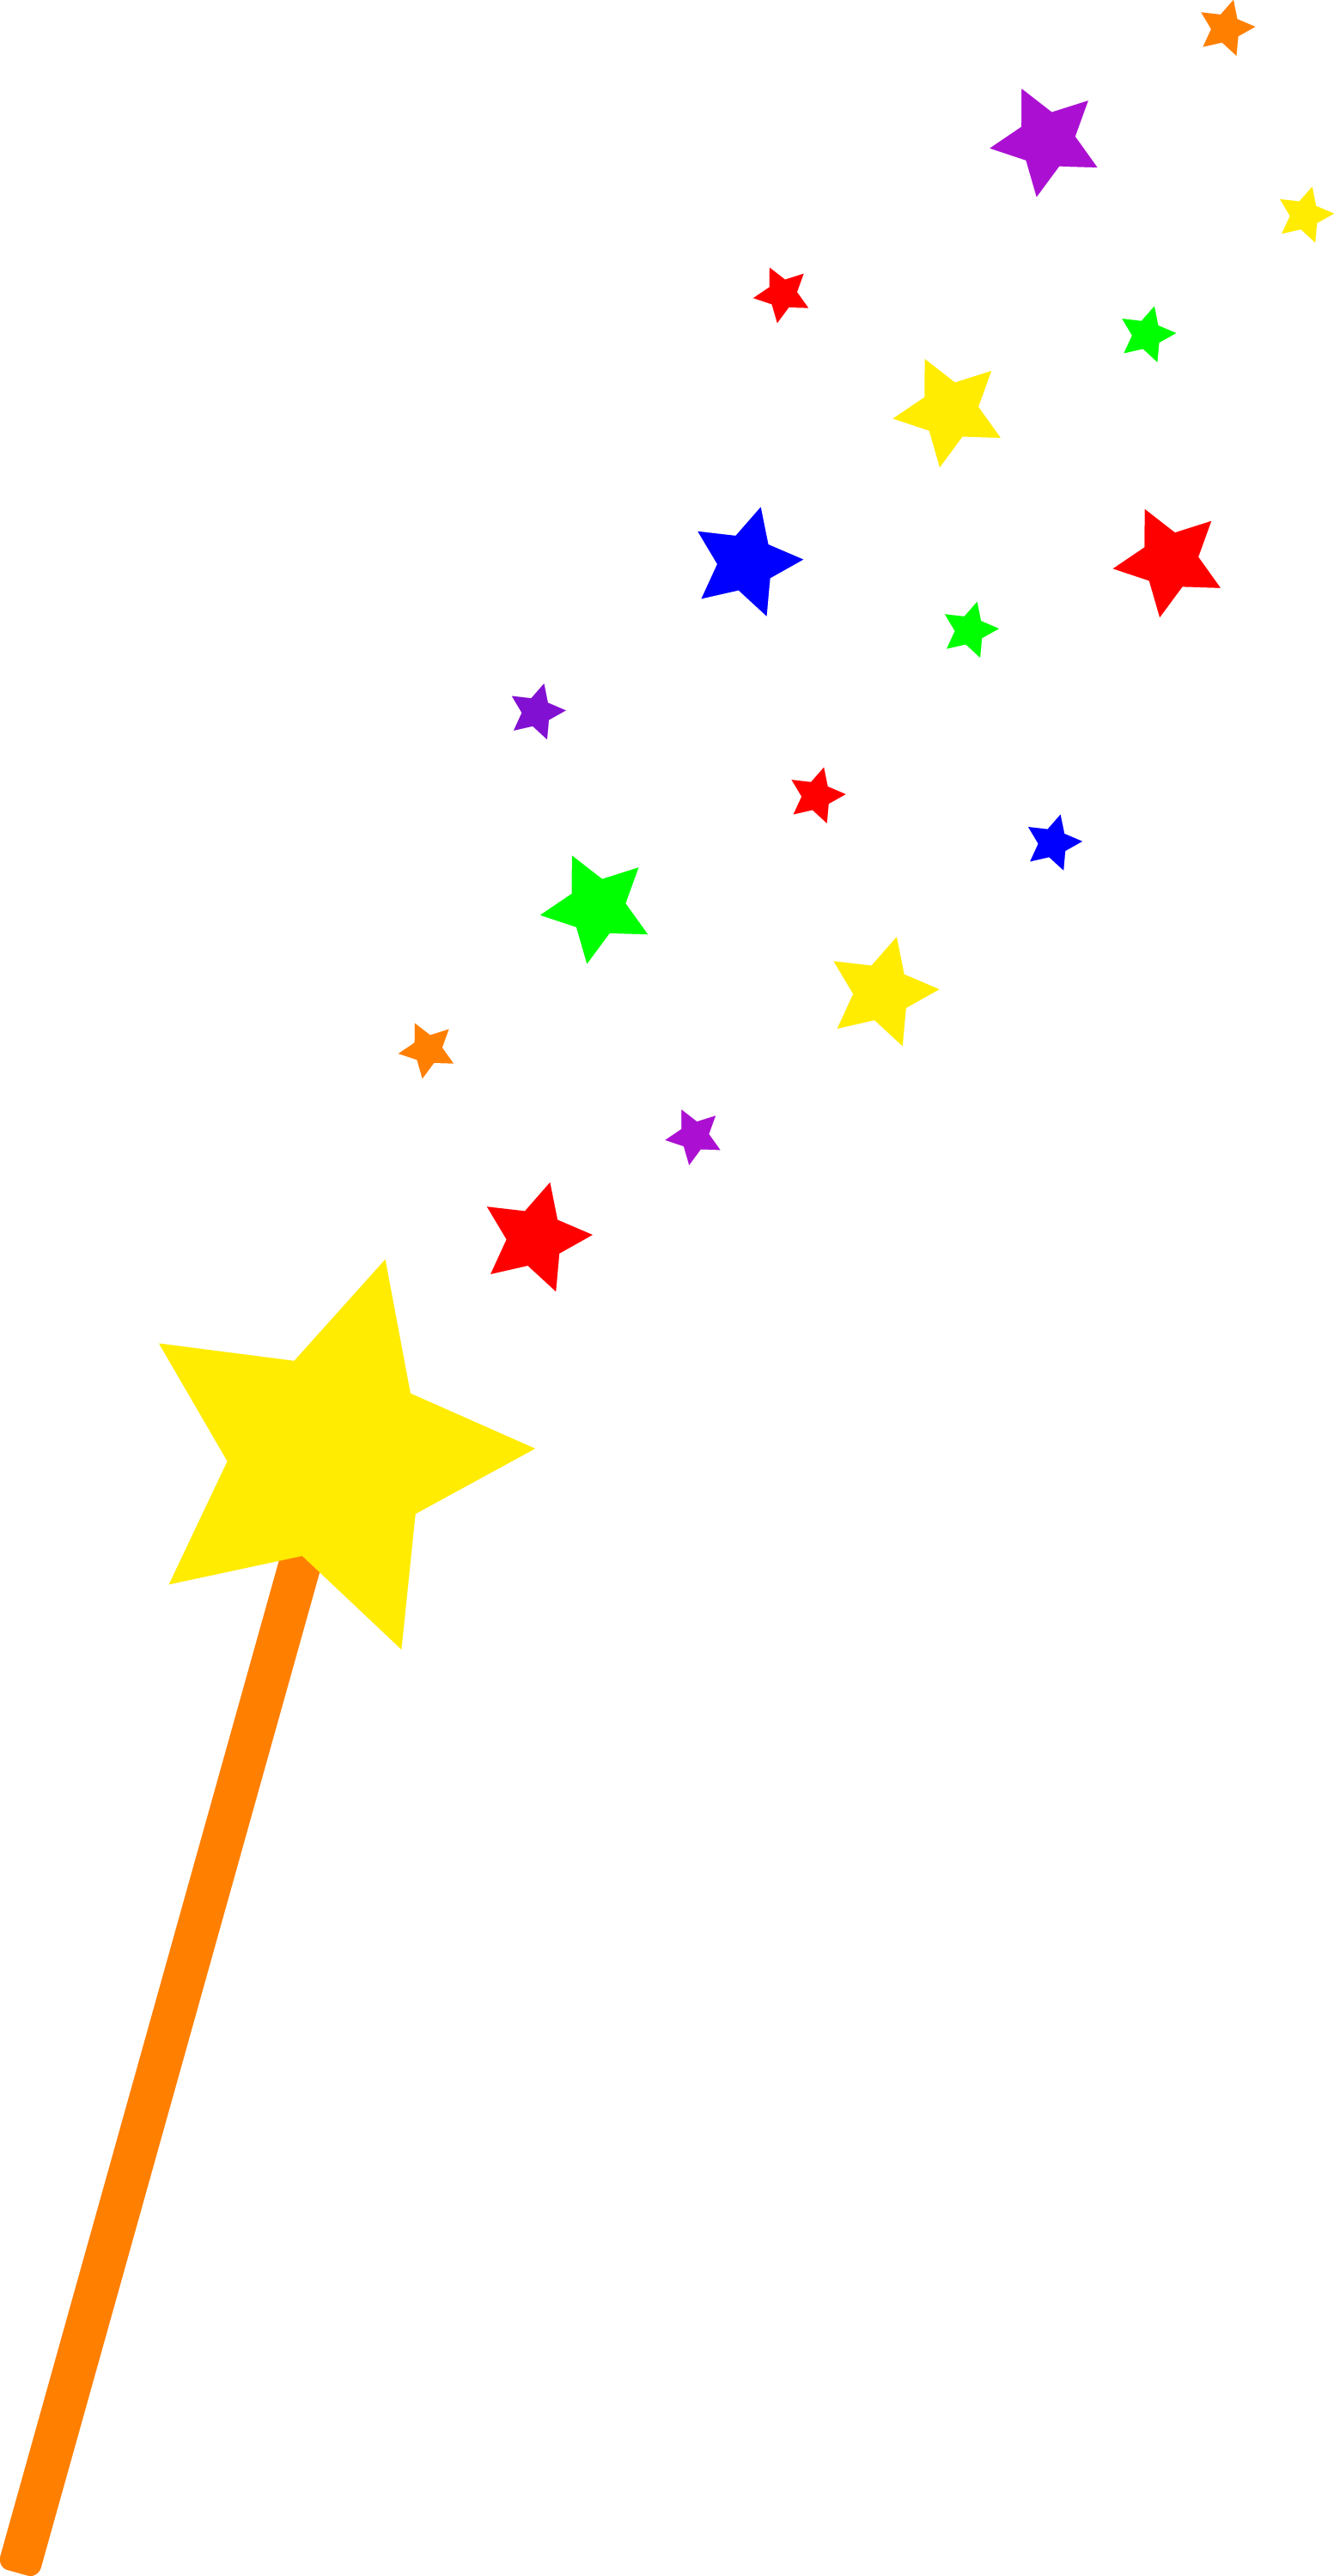 starry magic wand free clip art rh sweetclipart com Magic Wand Clip Art Frog free clipart magic wand